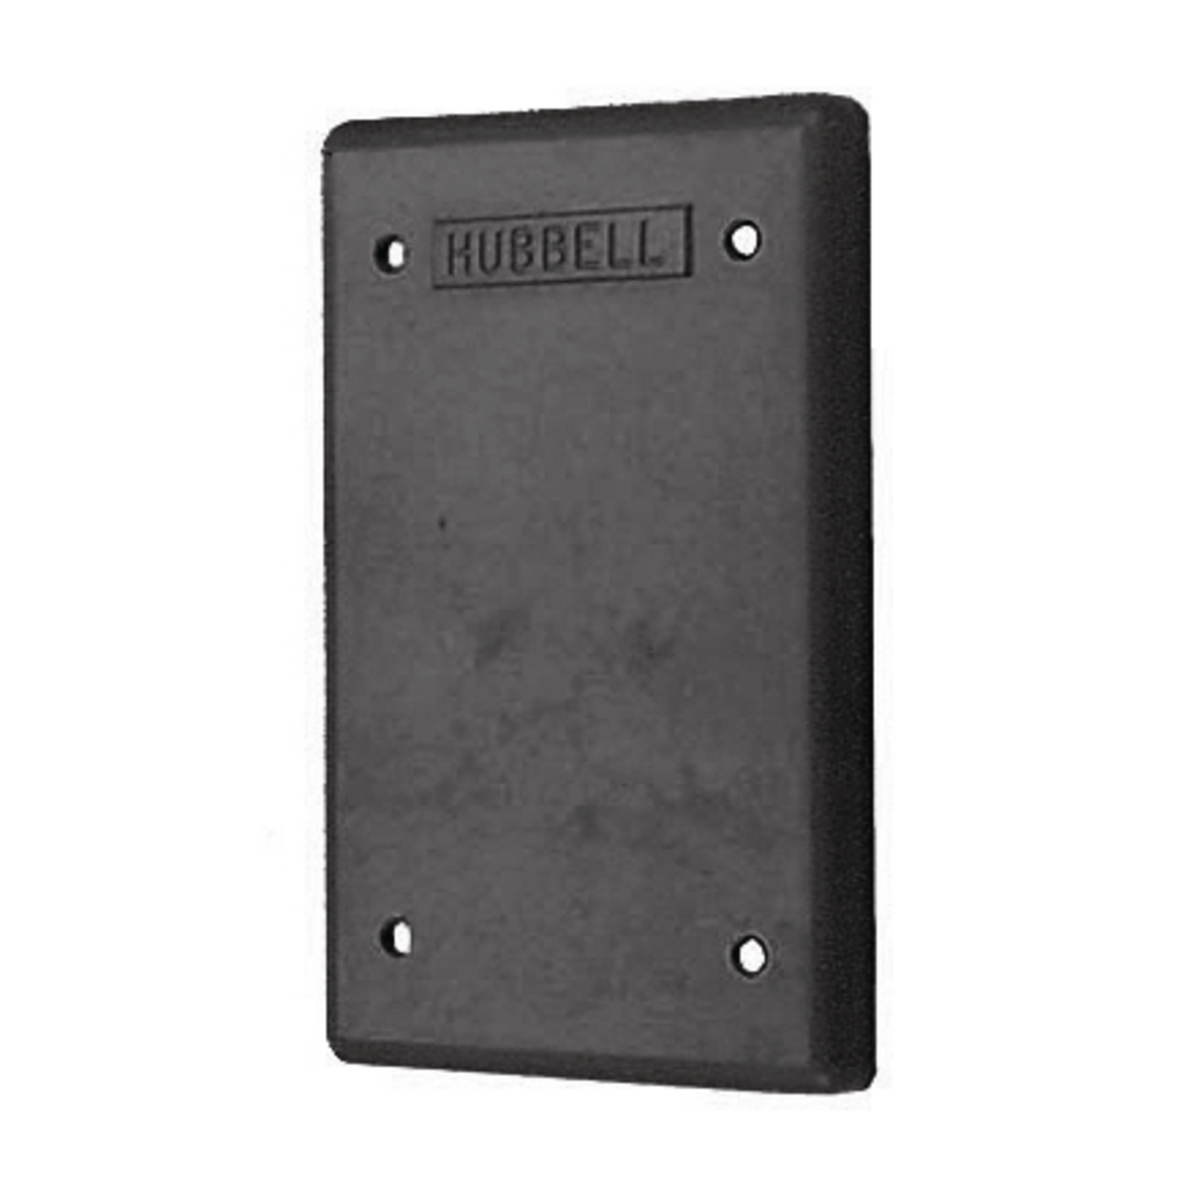 Hubbell HBL6087COVER FOR 6080OS BOX, BK PHENOLIC